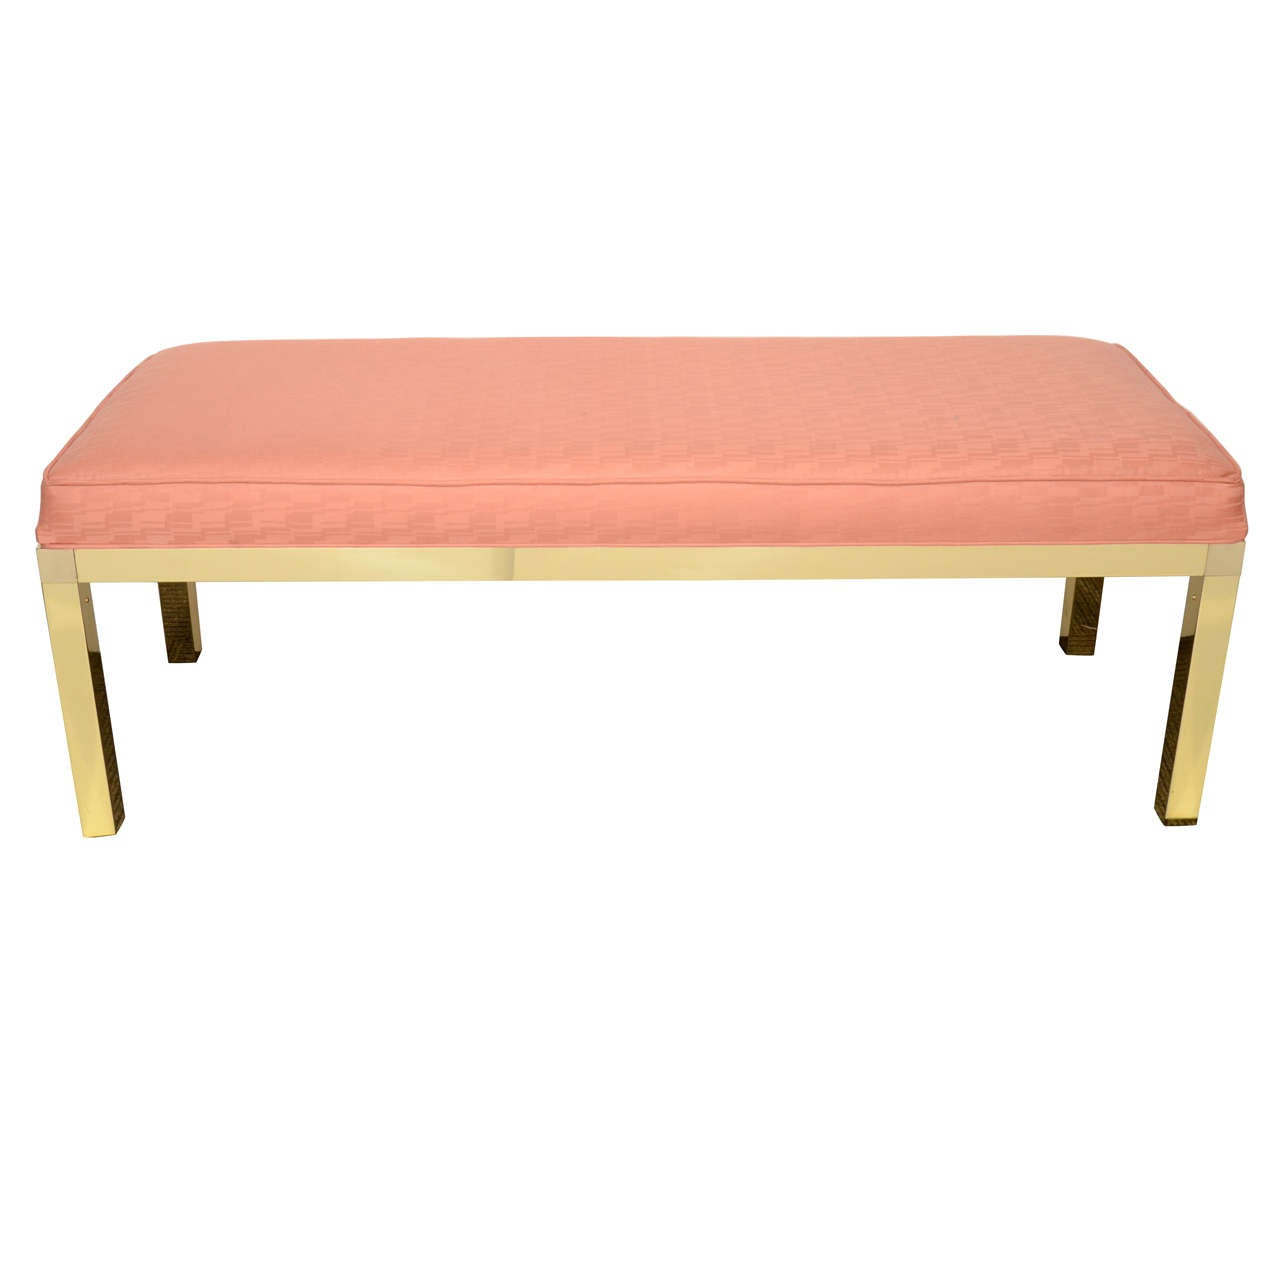 Mid Century Bench In Pink With Brass Frame At 1stdibs